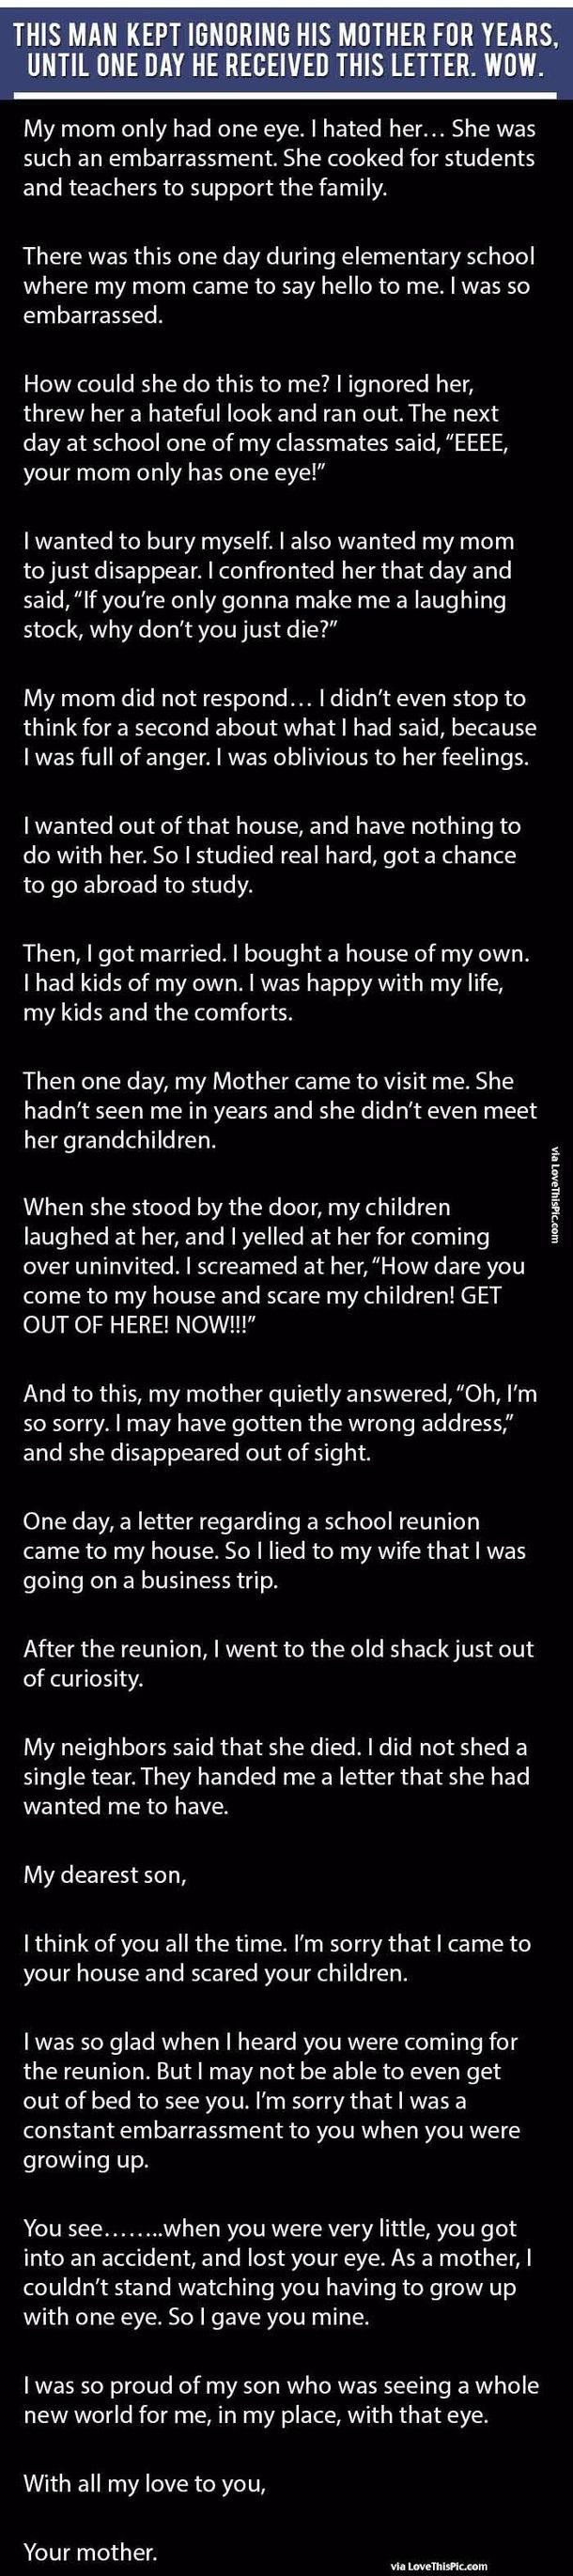 This Man Kept Ignoring His Mother For Years Until One Day He Received This Letter. Wow